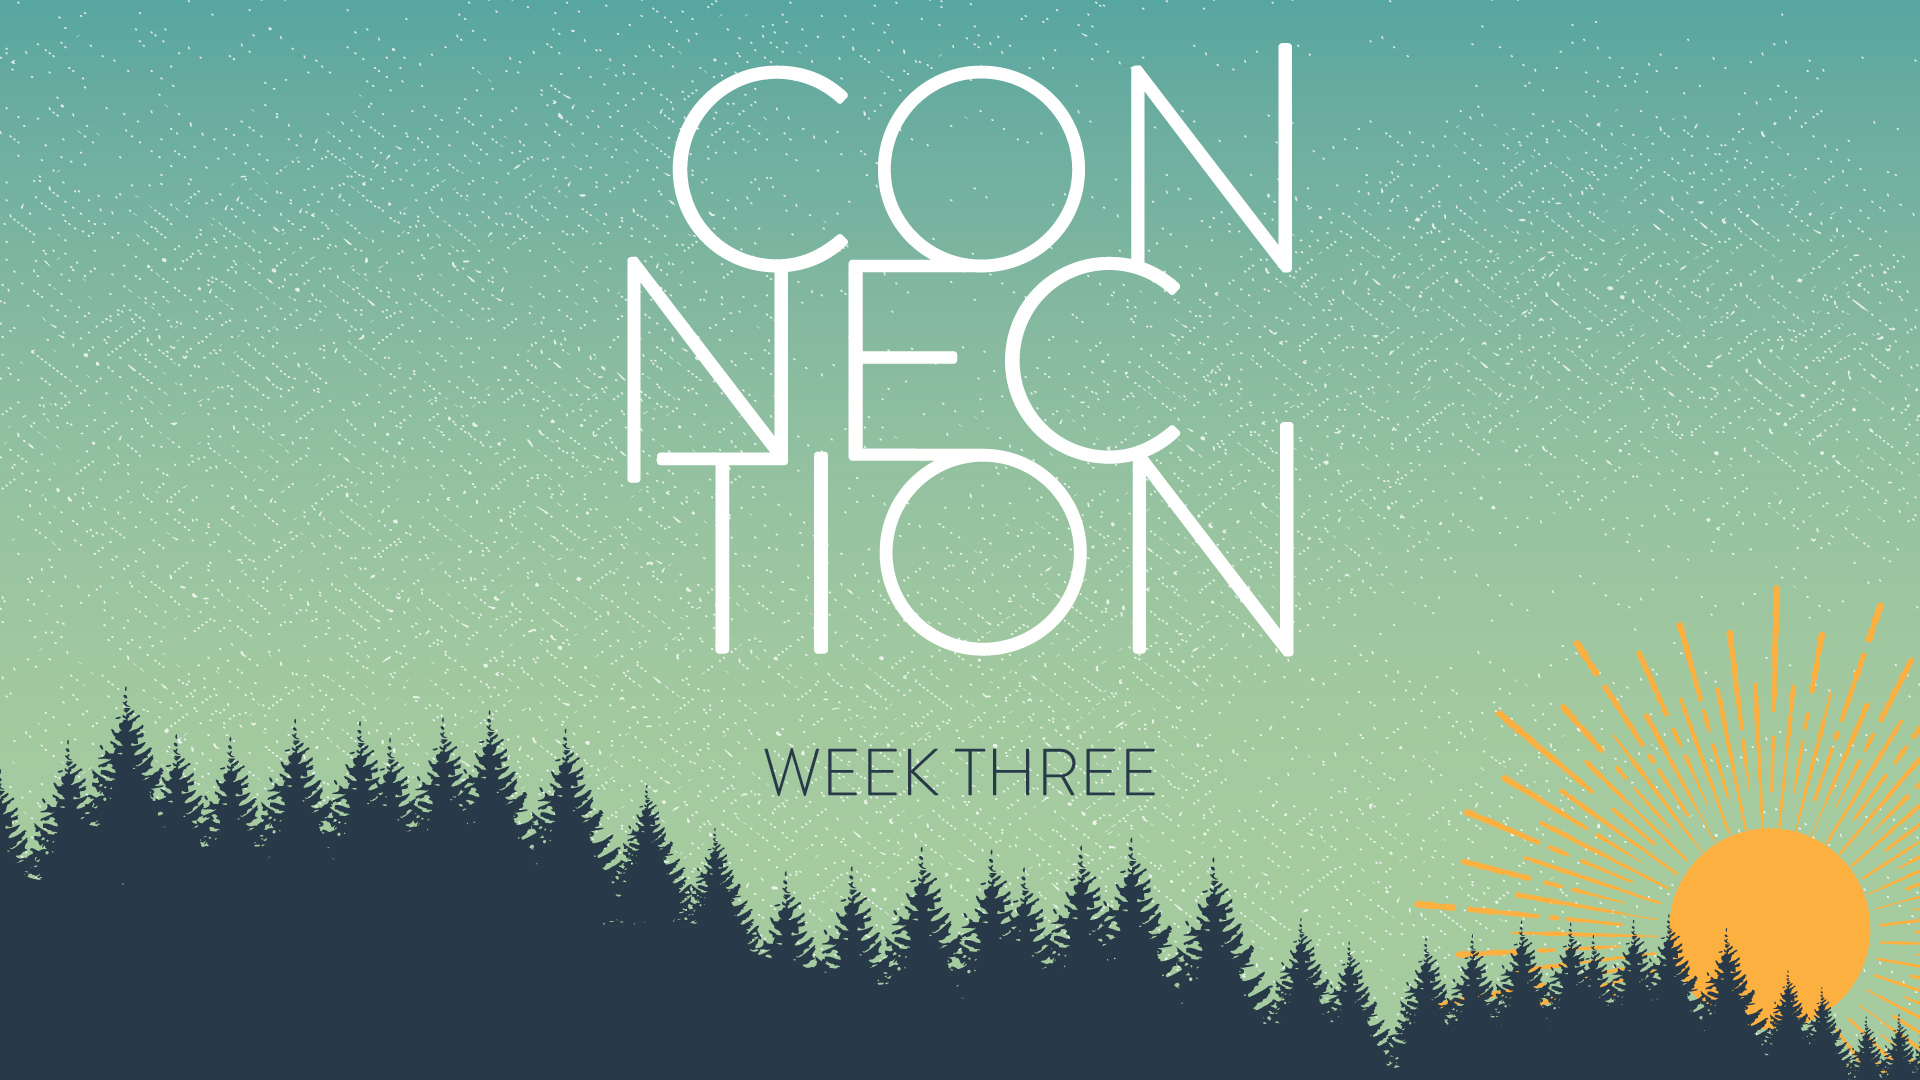 Connection - Week Three